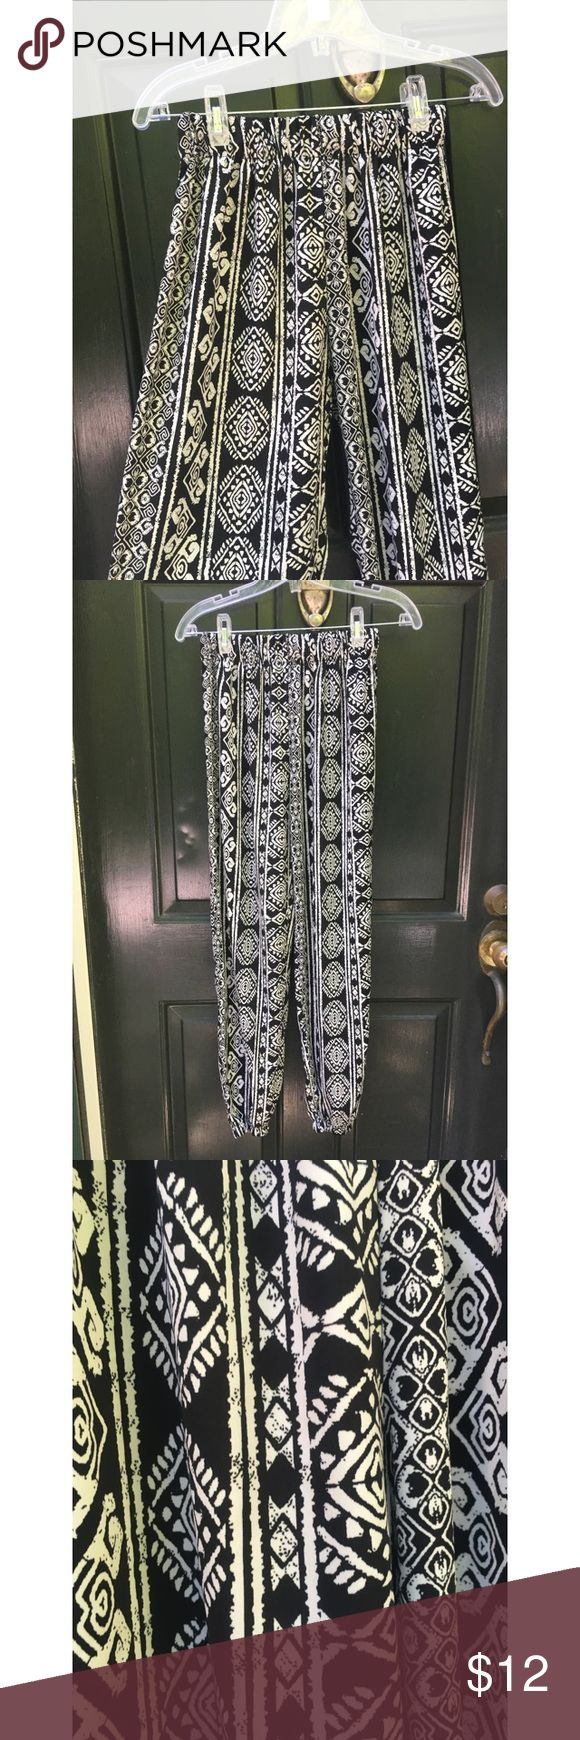 ✨ Black & White Boho Aztec Pattern Joggers - Black & White Boho Aztec Pattern Joggers - Awesome lightweight joggers from ambiance apparel/ local boutique called my best friends closet (feel free to Google)  - Great condition, worn once  - Elastic waist and elastic on each ankle  - Loose, flowy feel perfect for hot weather  - Brand: Ambiance Apparel/ Boutique - Size: M , true to size  *20% off 2+ * Make me an offer!! Boutique Pants